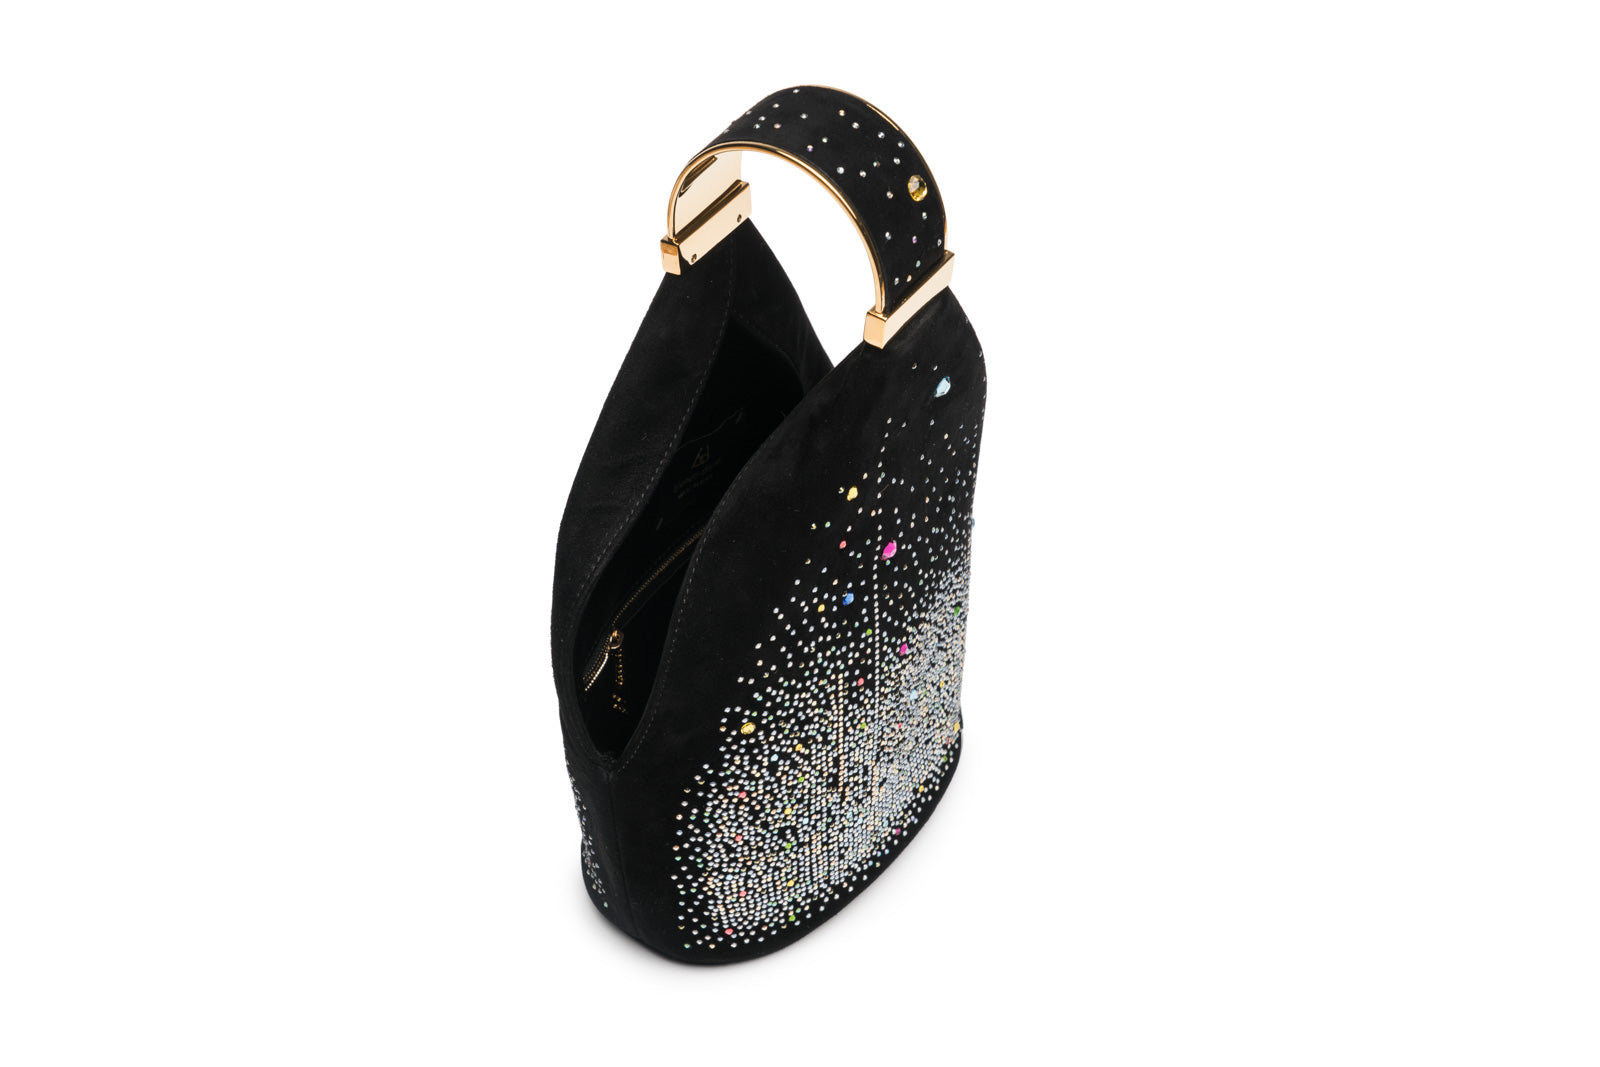 Kit Bracelet Bag in Multicolor Crystal Studded Black Suede with 24K Gold Dipped Hardware